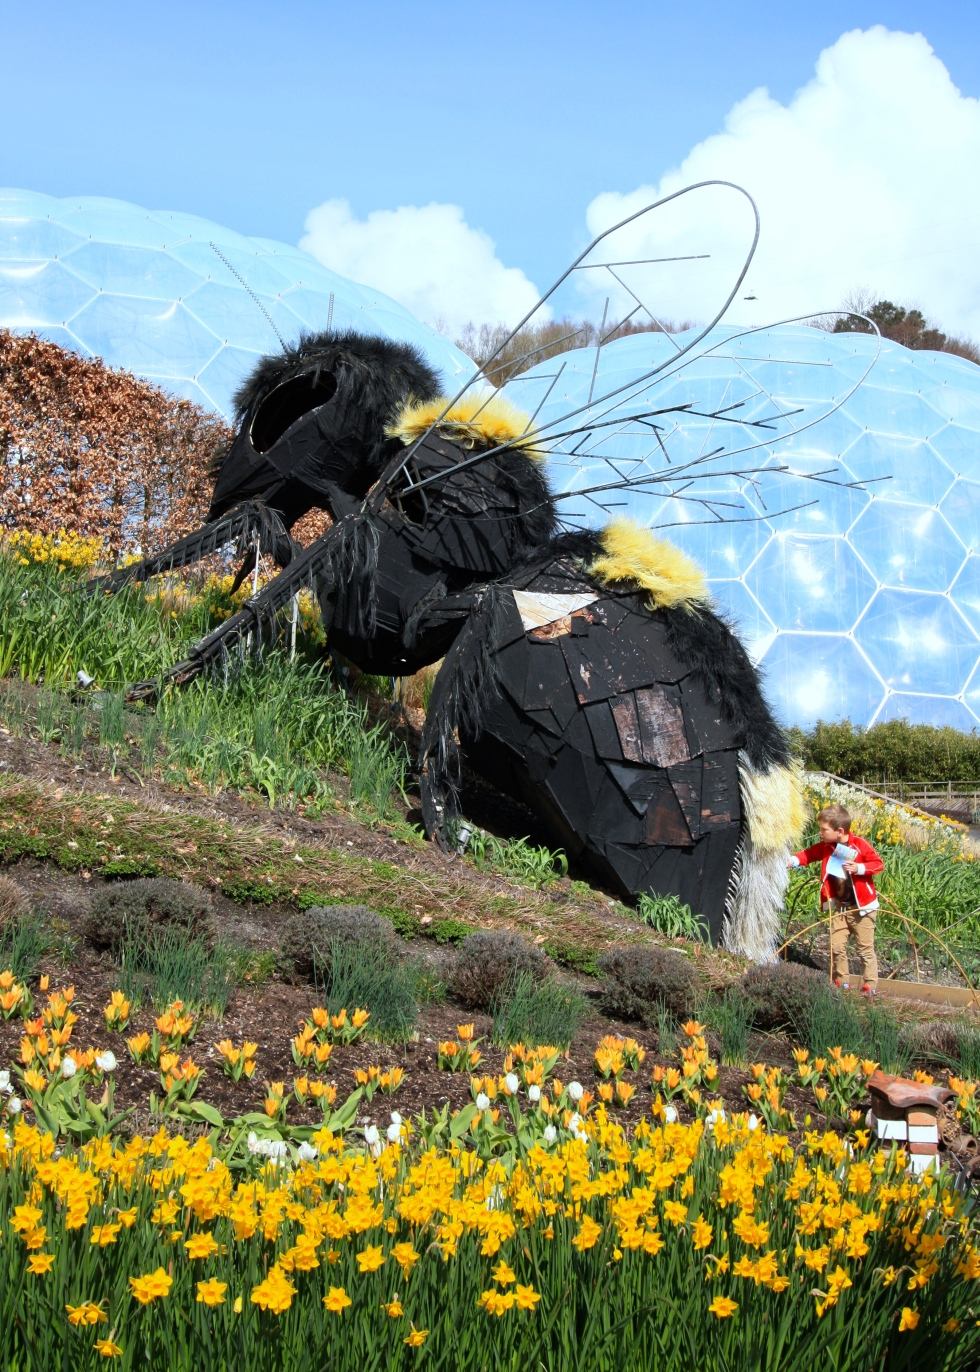 Children and adults alike are fascinated by The Bee's hairy 'tail'